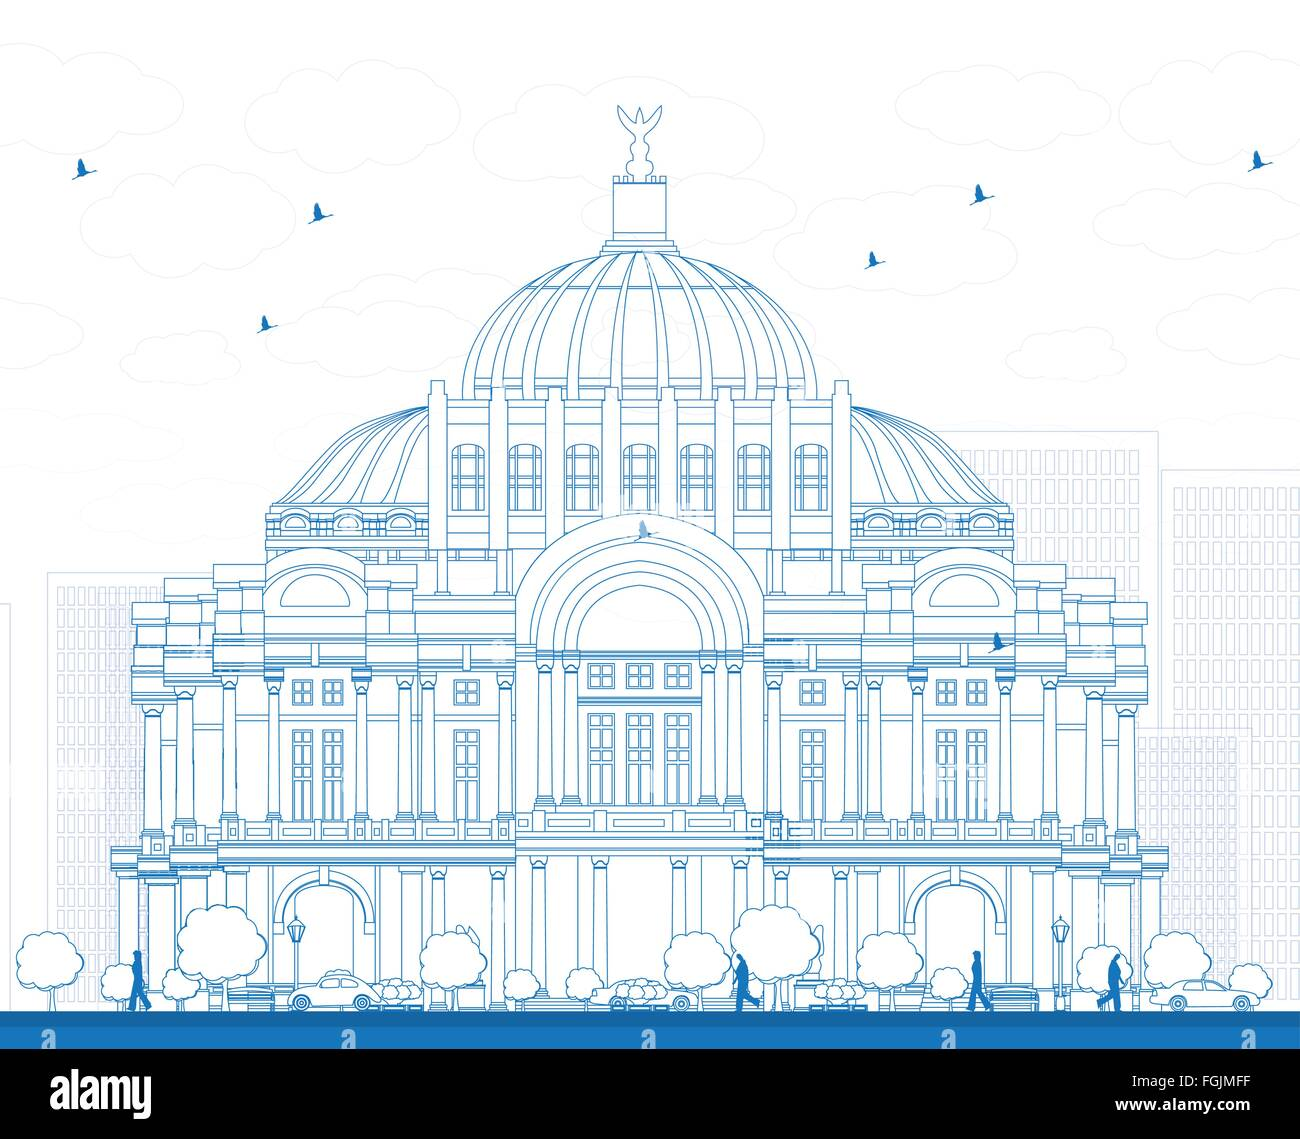 Outline The Fine Arts Palace/Palacio de Bellas Artes in Mexico City, Mexico. Vector illustration. - Stock Vector